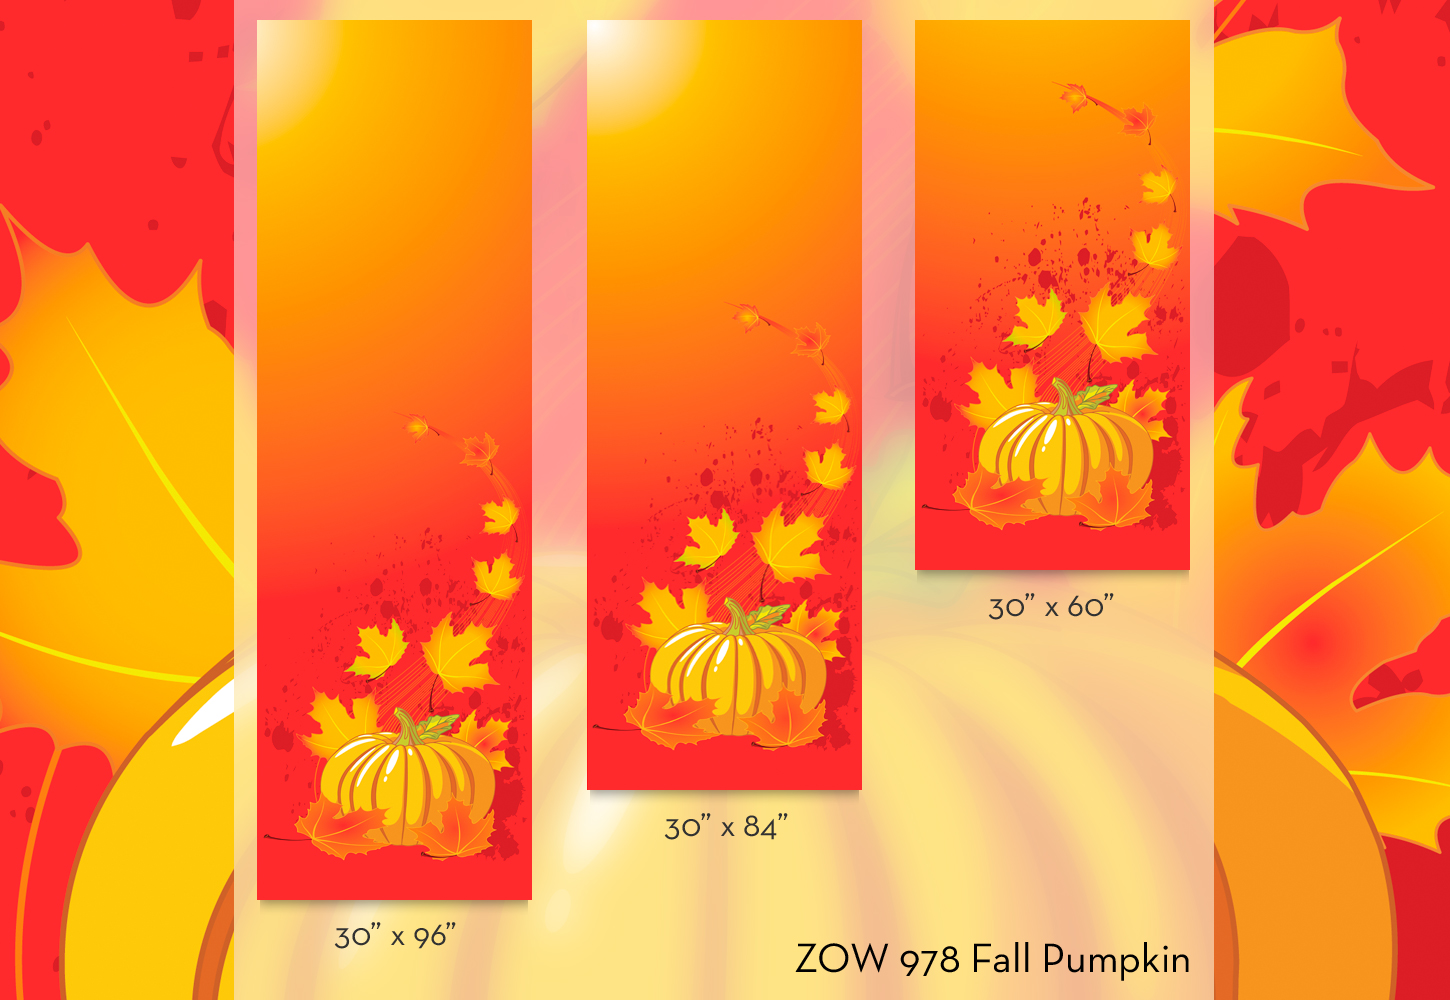 ZOW 978 Fall Pumpkin